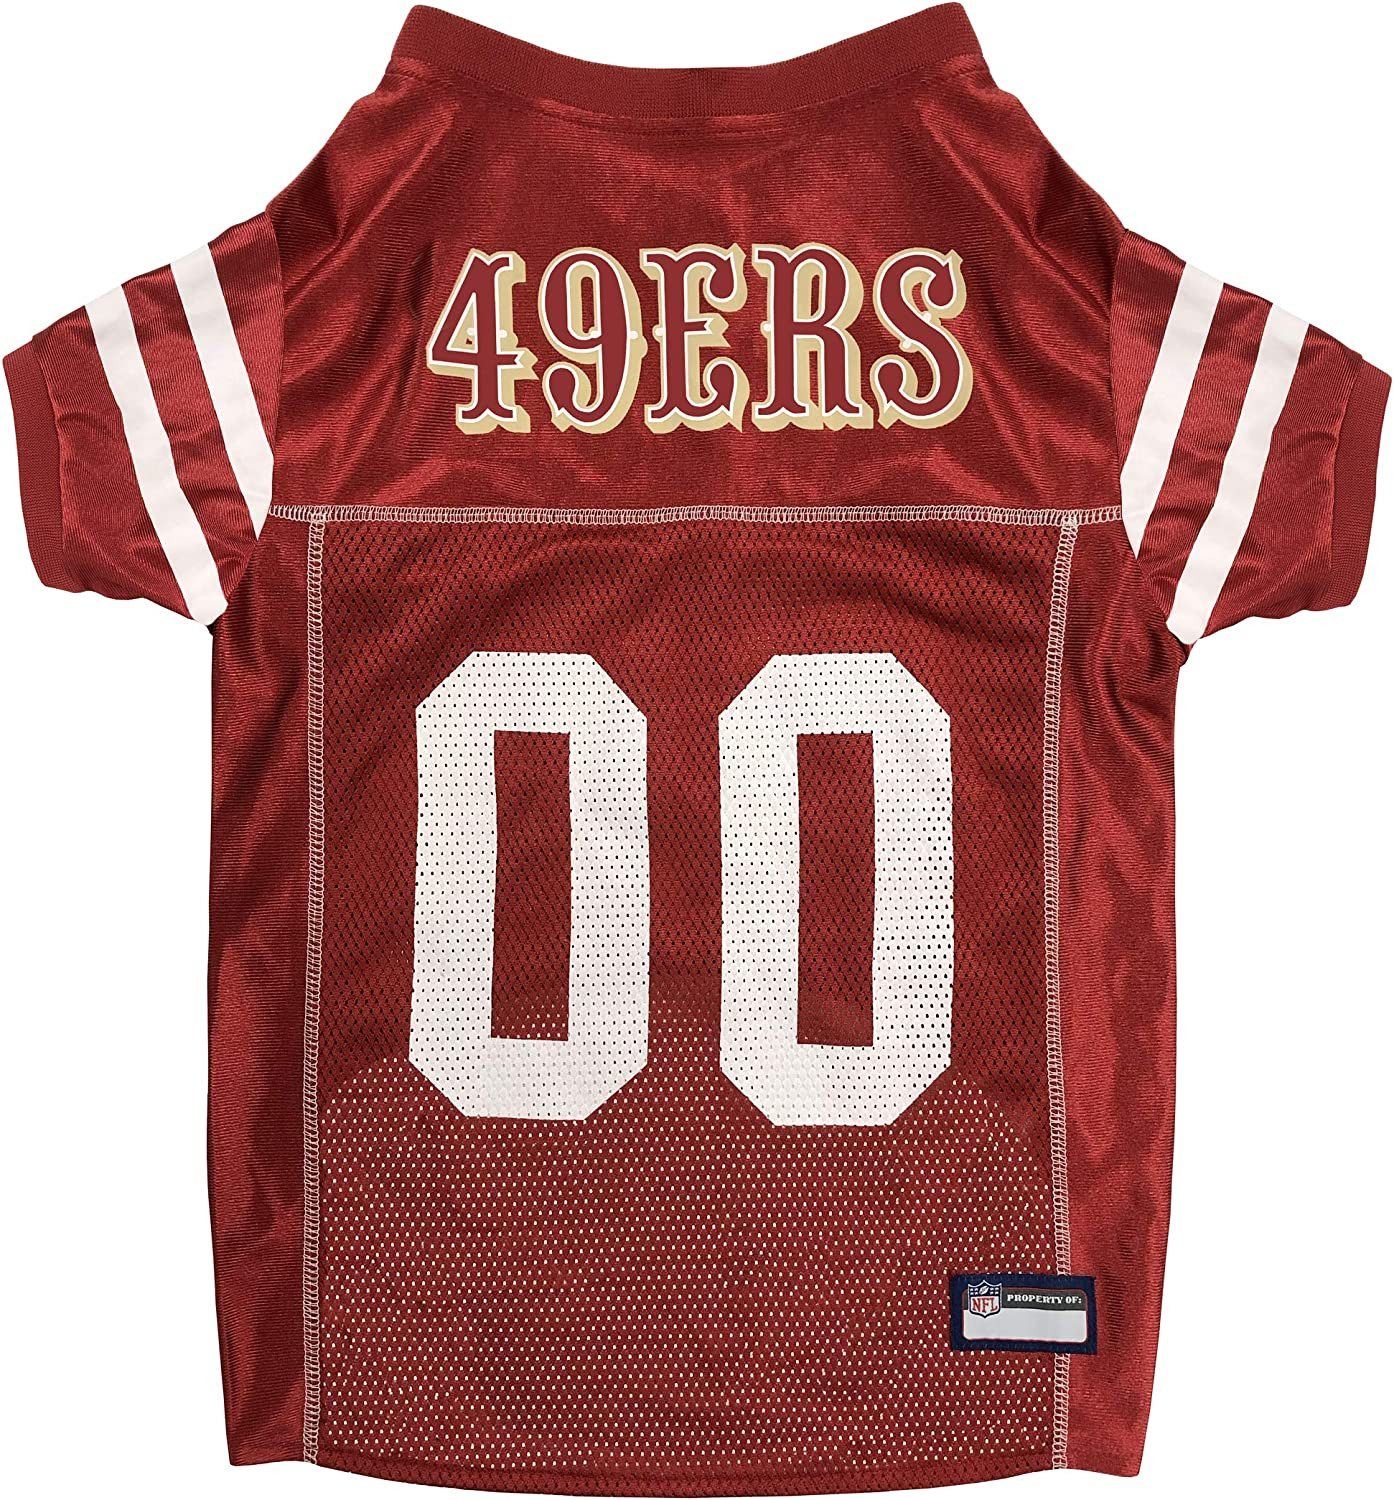 Fanmats Max 81% OFF New mail order NFL SAN Francisco 49ERS Dog Jersey